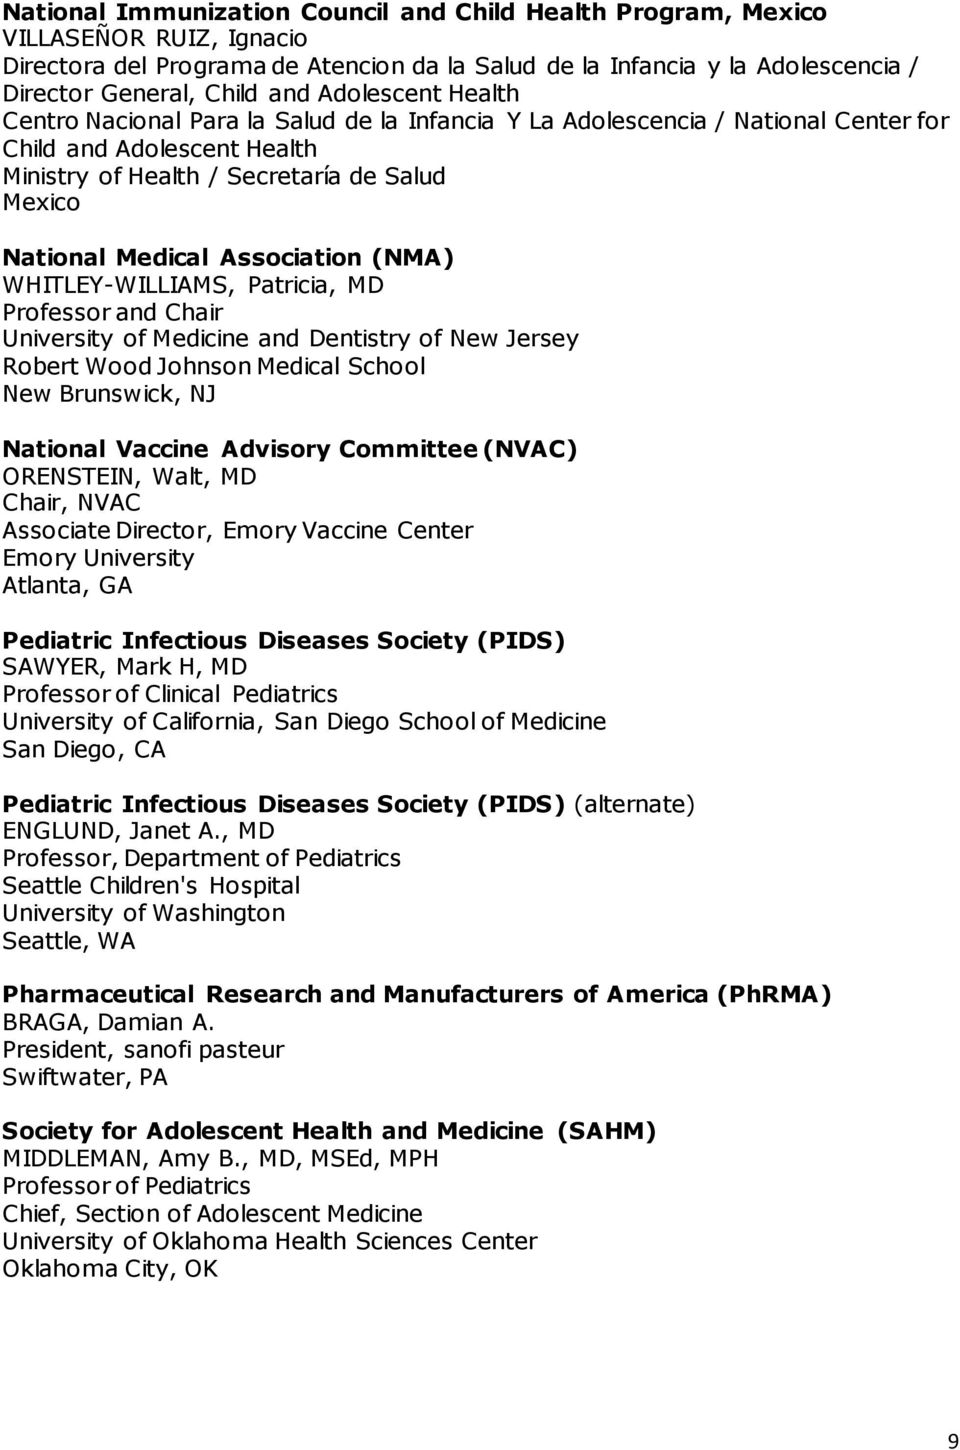 Association (NMA) WHITLEY-WILLIAMS, Patricia, MD Professor and Chair University of Medicine and Dentistry of New Jersey Robert Wood Johnson Medical School New Brunswick, NJ National Vaccine Advisory